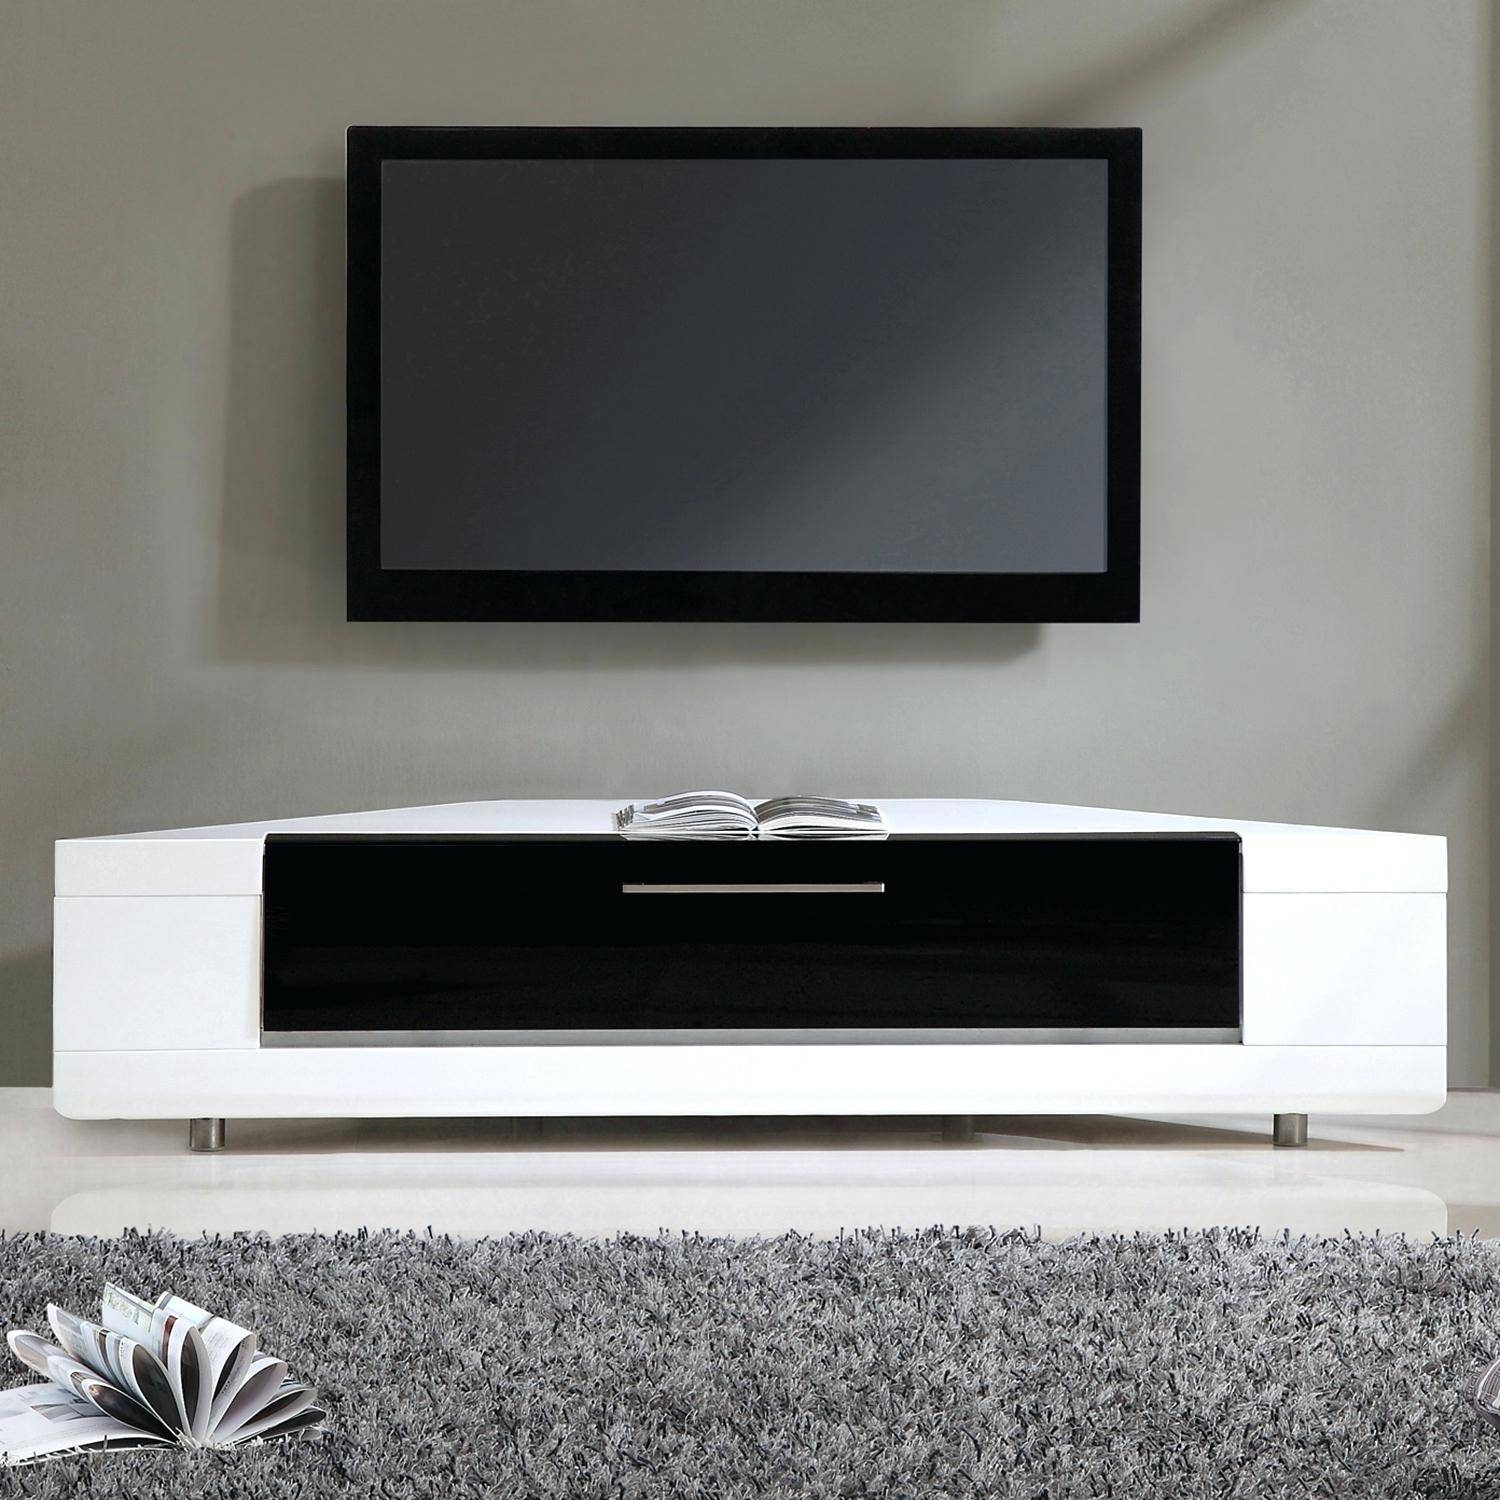 Tv Stand : 105 Full Size Of Furniturecorner Tv Stand The Range intended for White High Gloss Corner Tv Unit (Image 9 of 15)